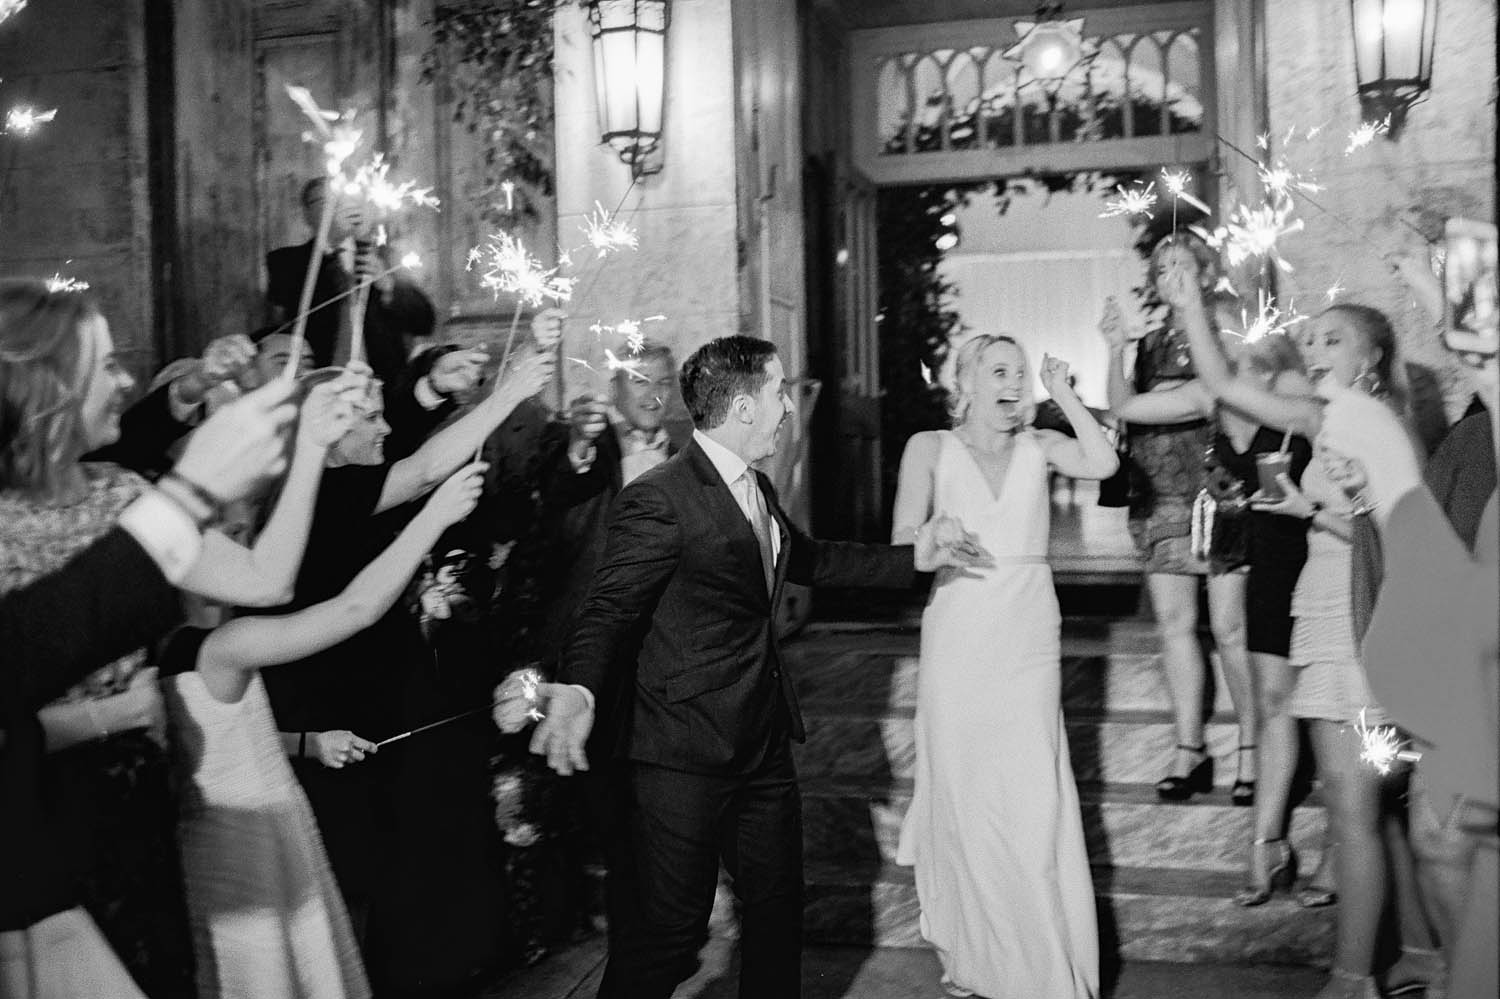 new orleans marigny opera house wedding reception bride and groom sparkler departure